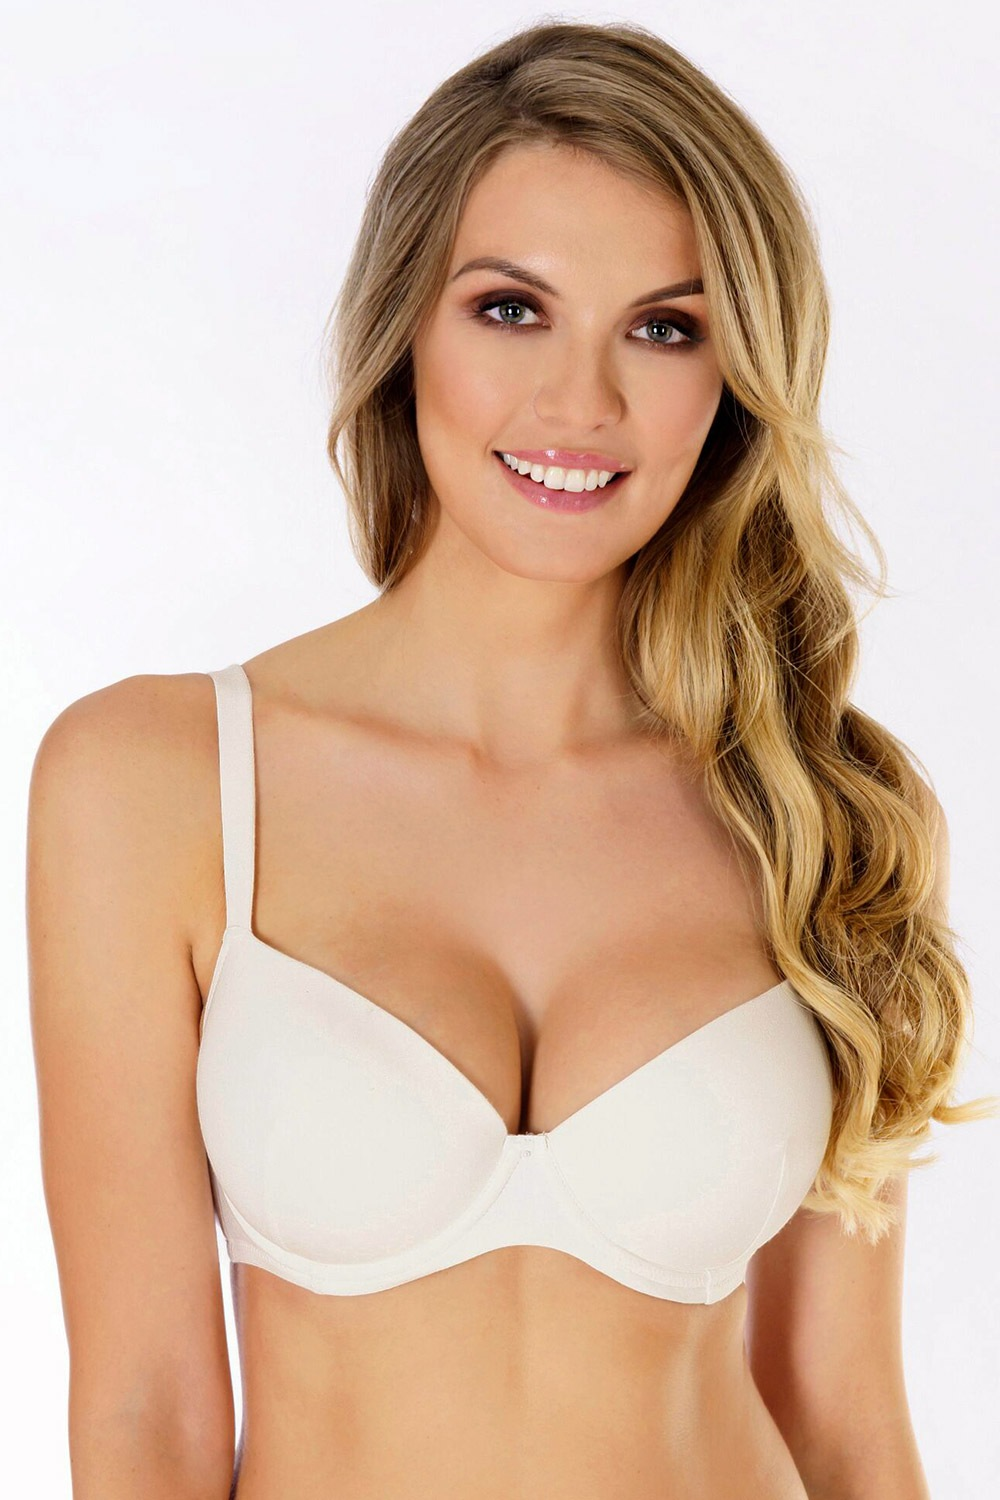 Podprsenka Soft Cotton Push-Up bavlněná ecru004 70B